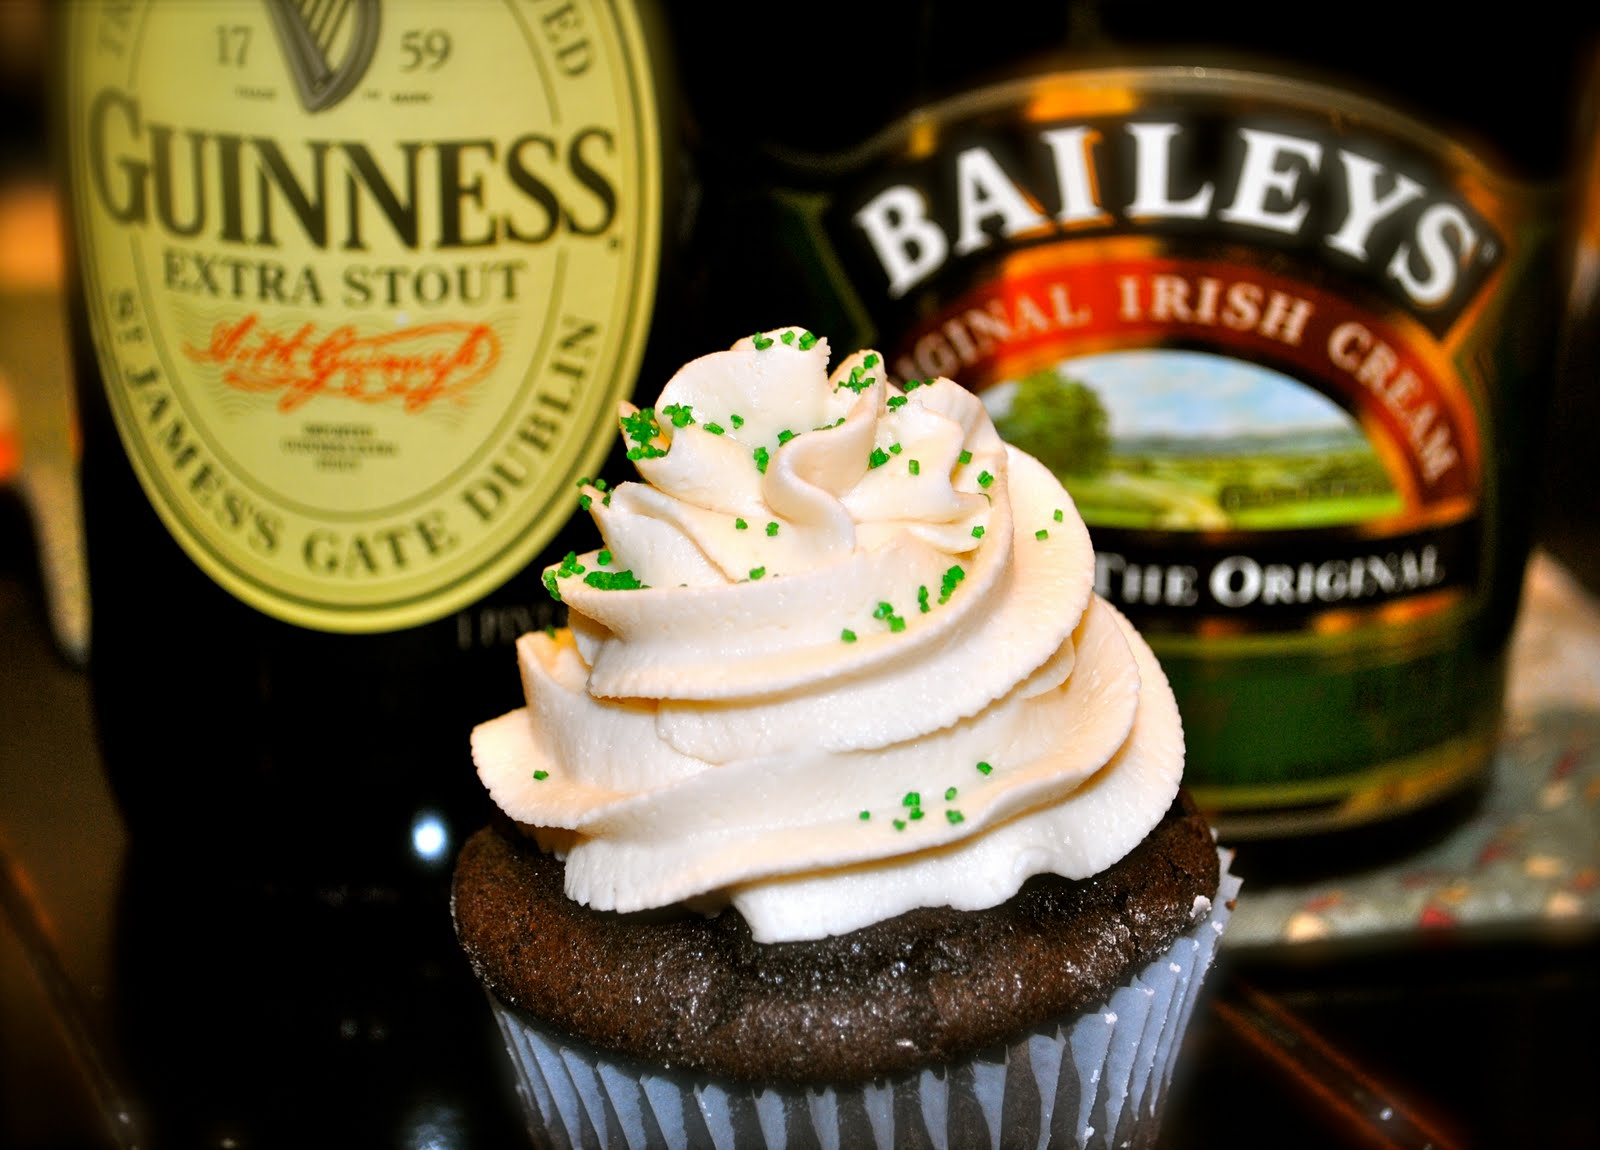 ? These Guinness Stout cupcakes with Baileys Irish Cream frosting ...